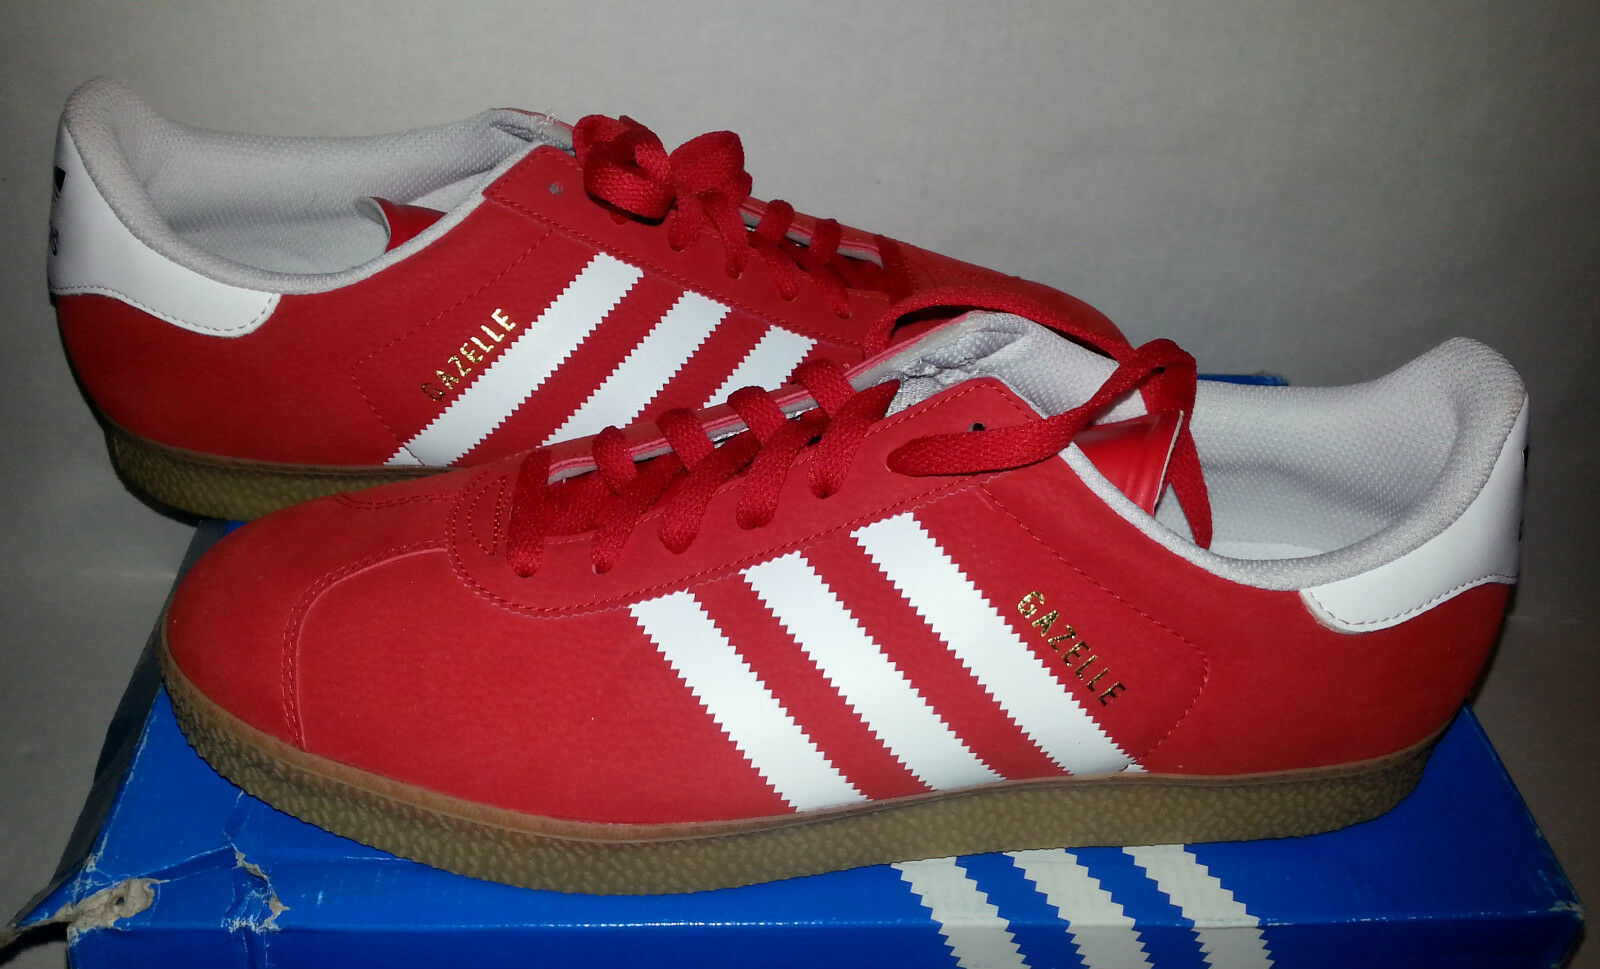 ADIDAS ORIGINALS CLASSIC GAZELLE 2 RED/GUM MENS SHOES    SIZE 13 0f9102